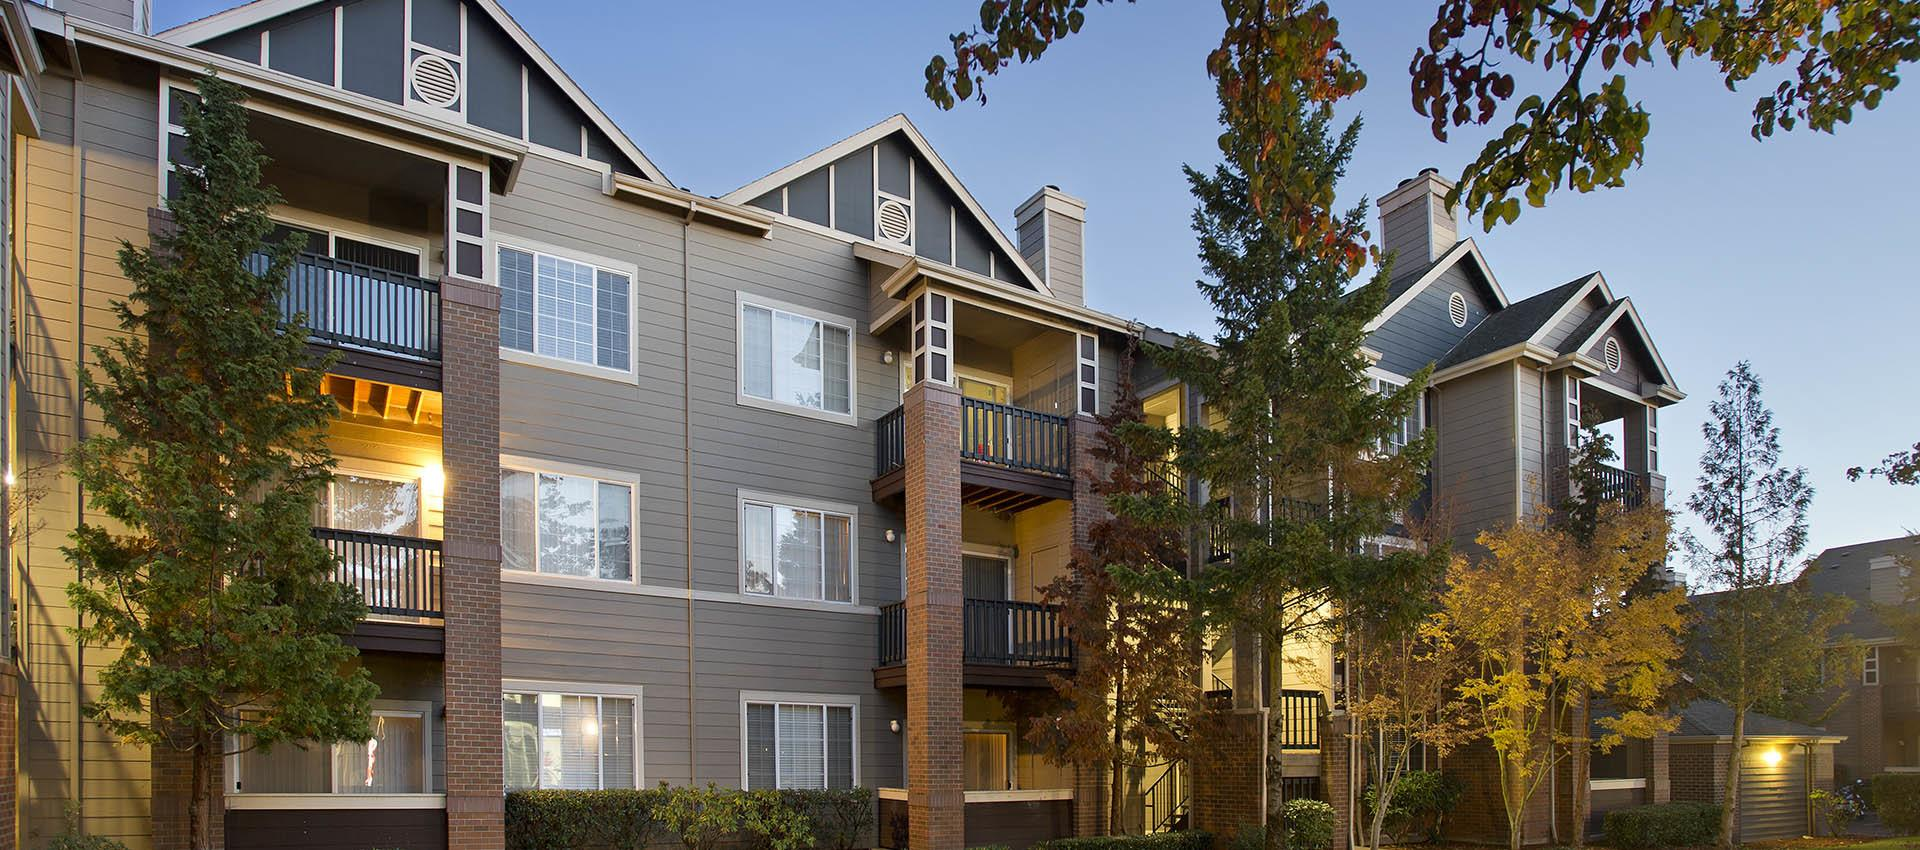 Exterior at Cortland Village Apartment Homes in Hillsboro, OR